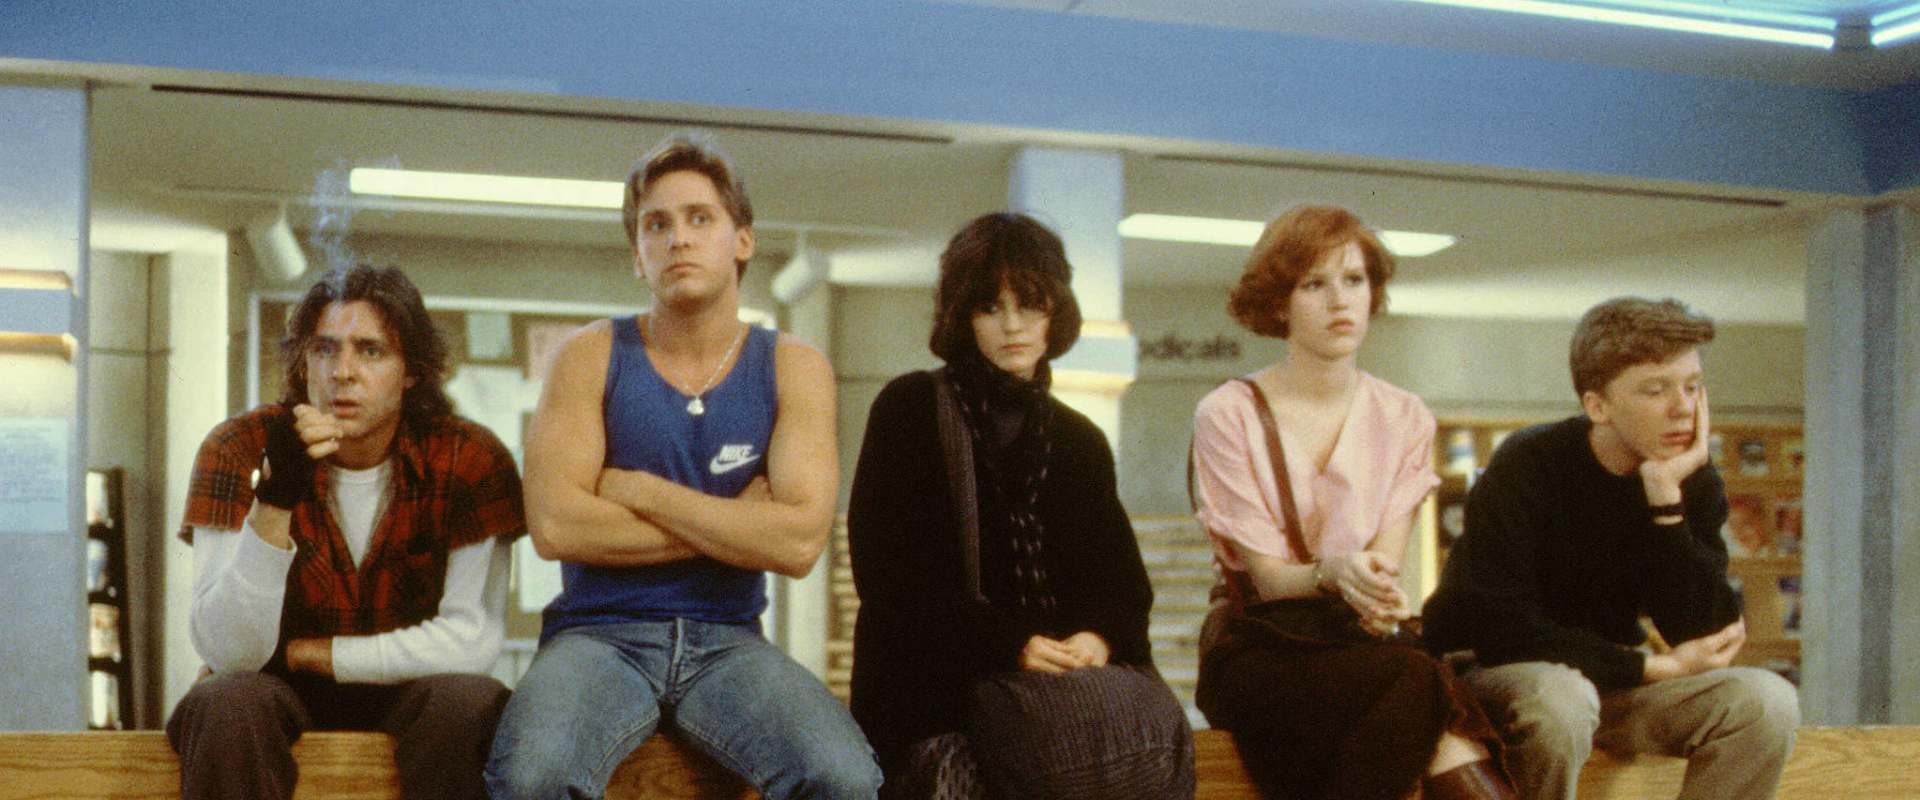 The Breakfast Club background 1